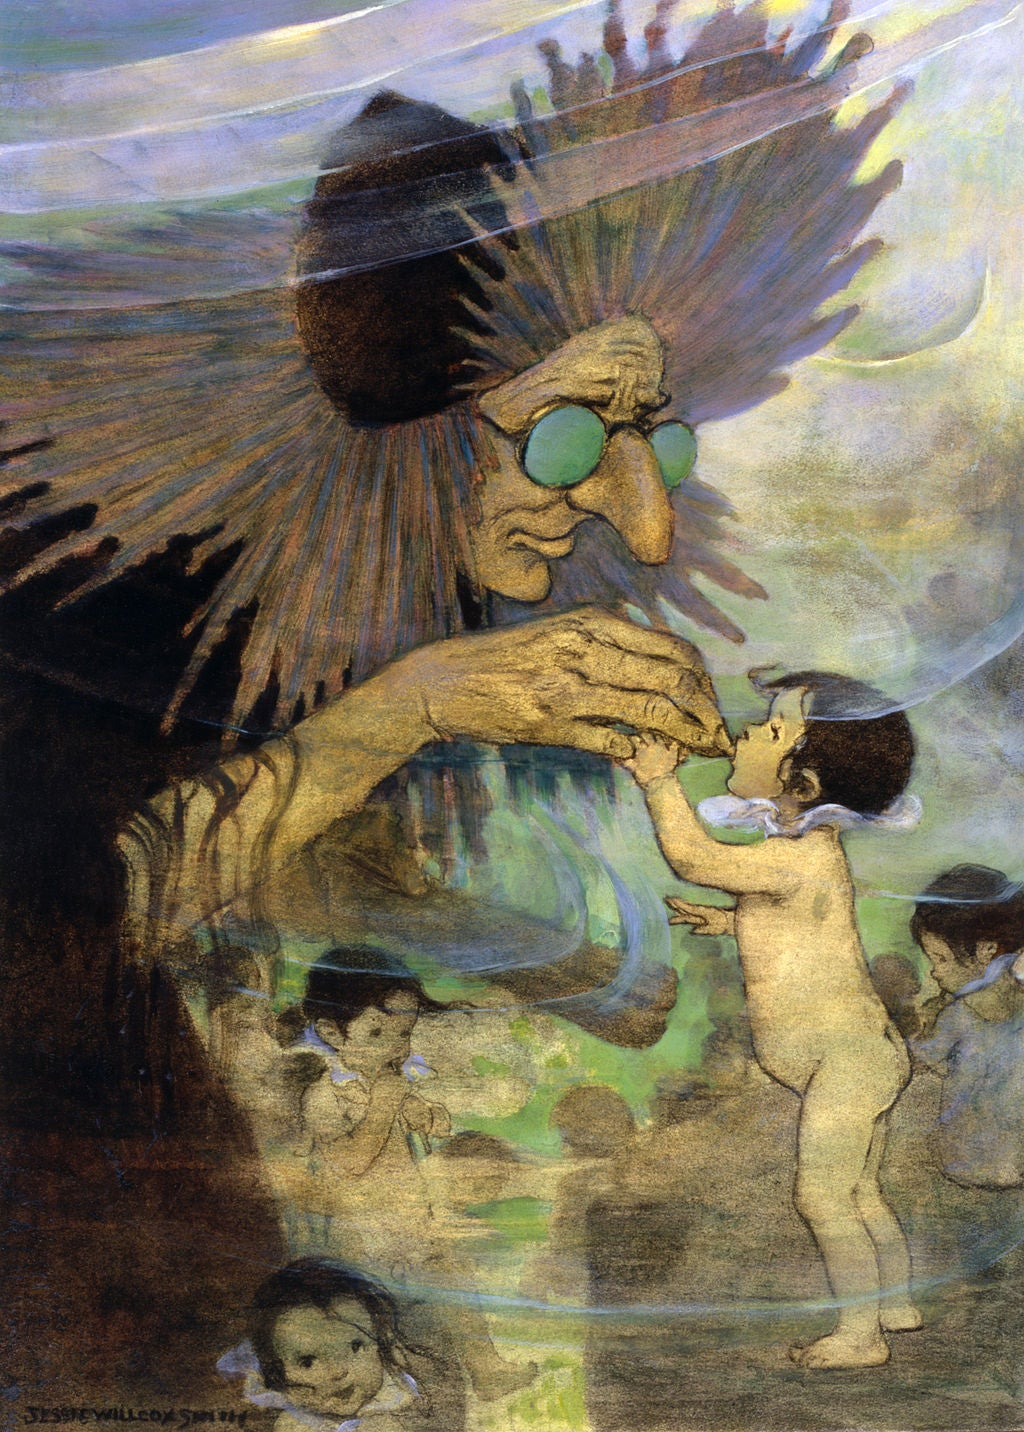 The Water Babies, illustrated by Jessie Willcox Smith